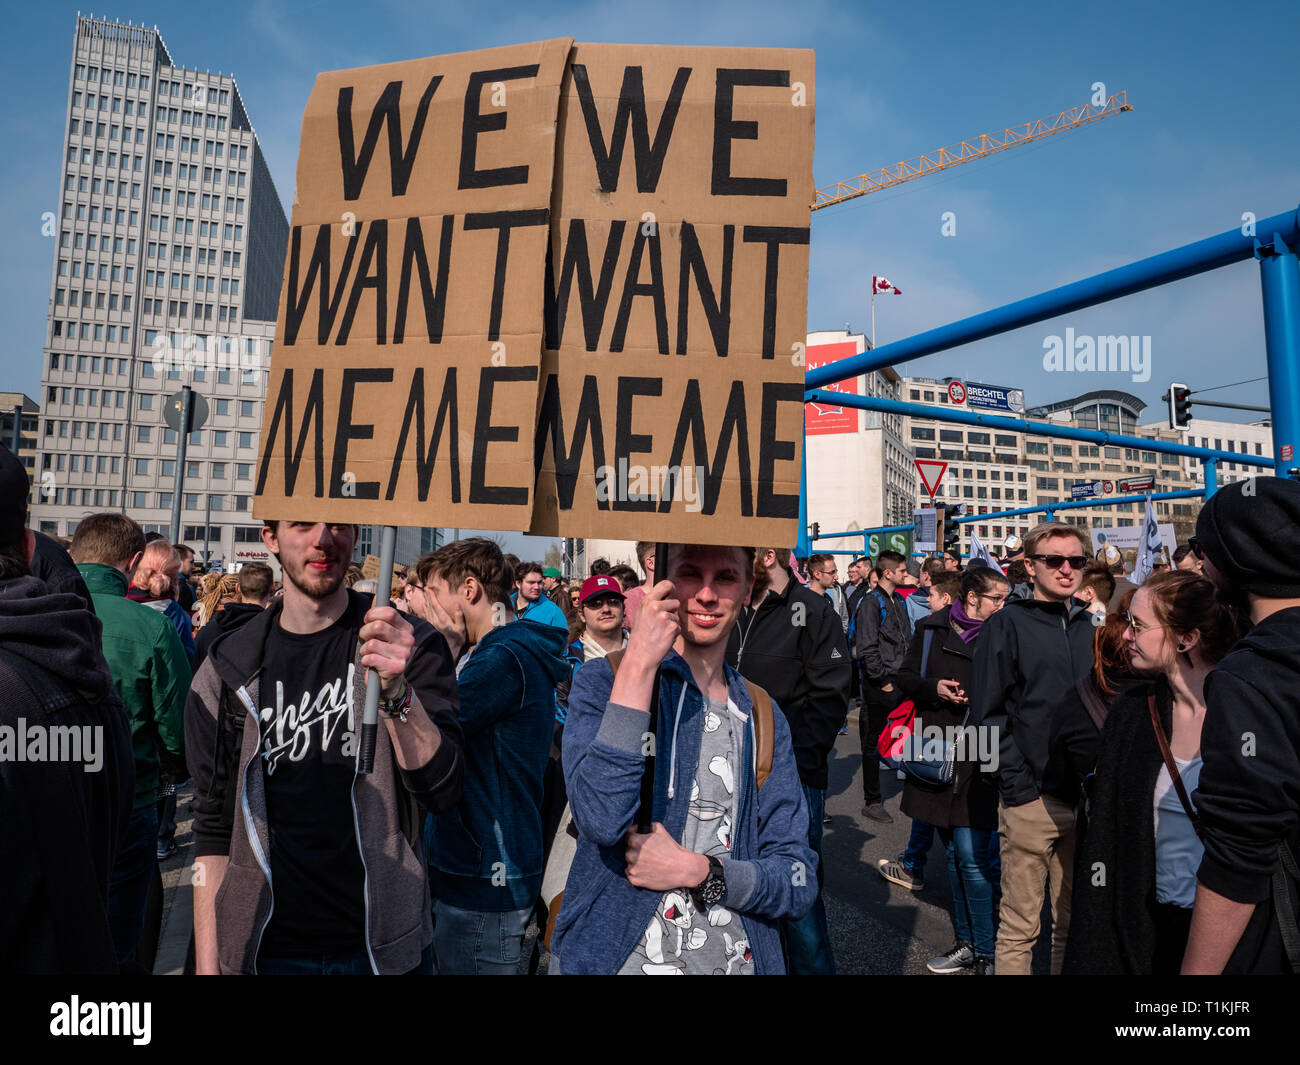 Berlin, Germany - March 23, 2019: Demonstration against EU Internet copyright reform / article 11 and article 13 in Berlin Germany Stock Photo